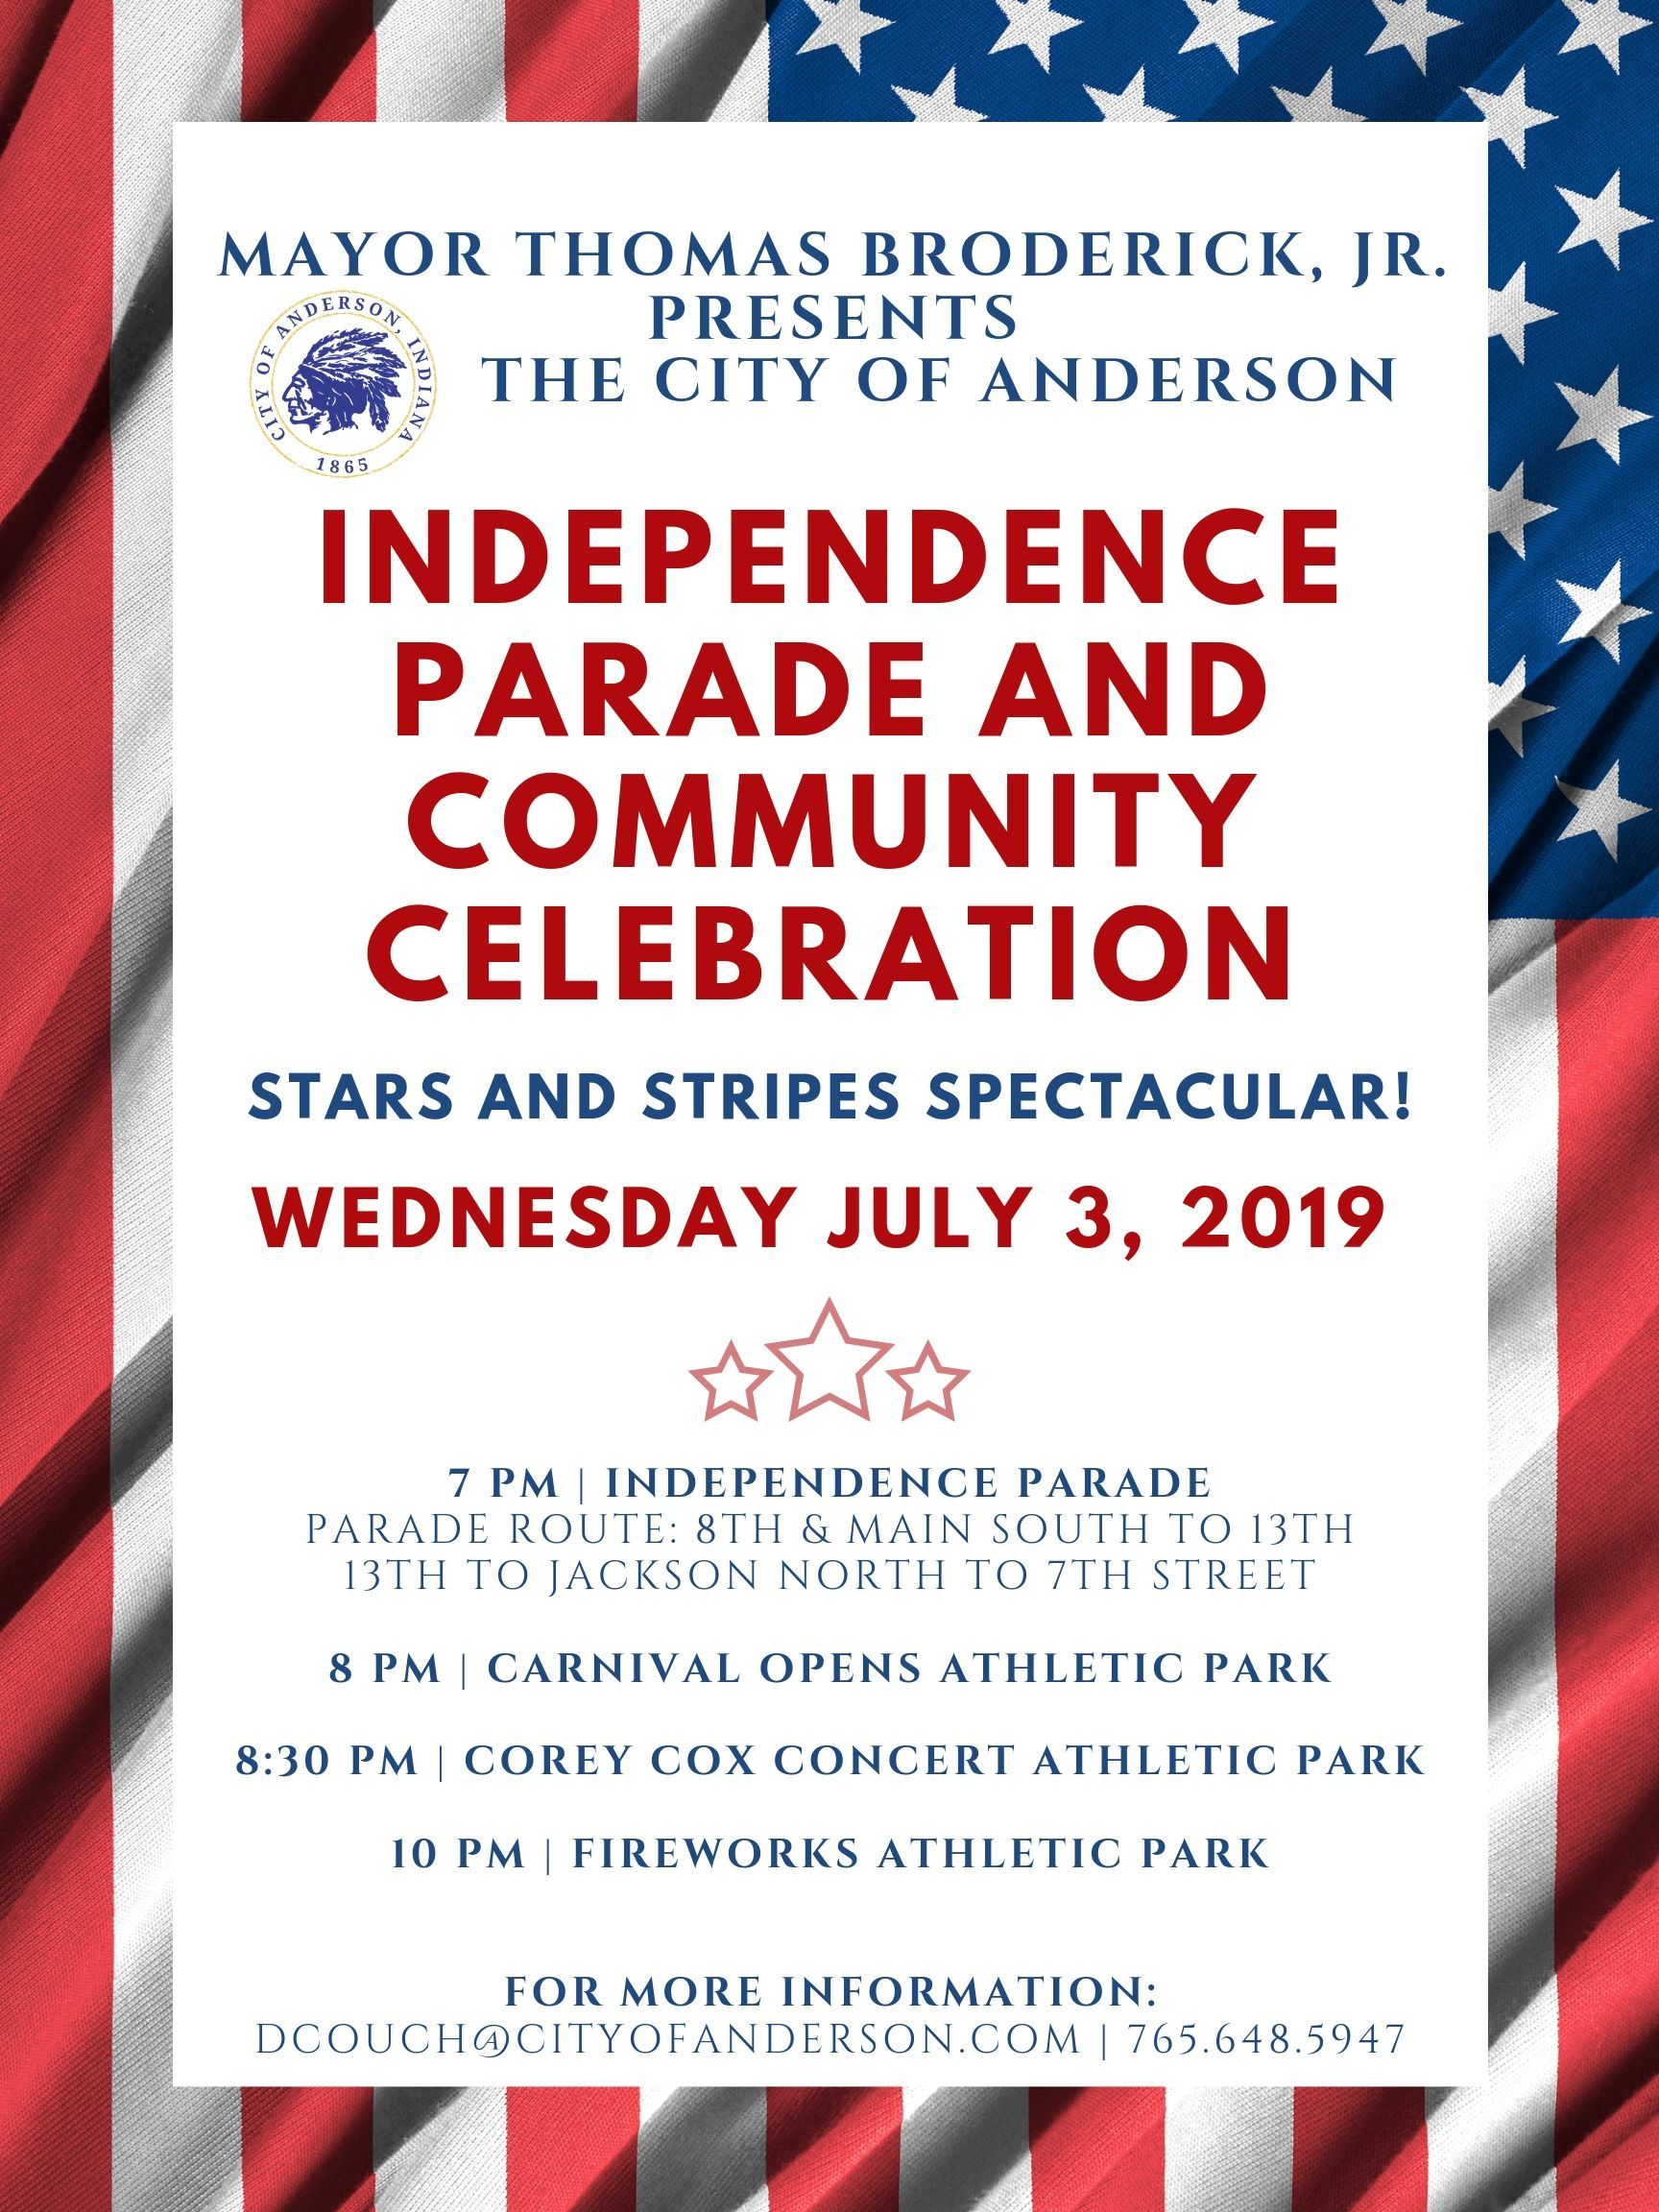 City of Anderson Independence Parade 2019